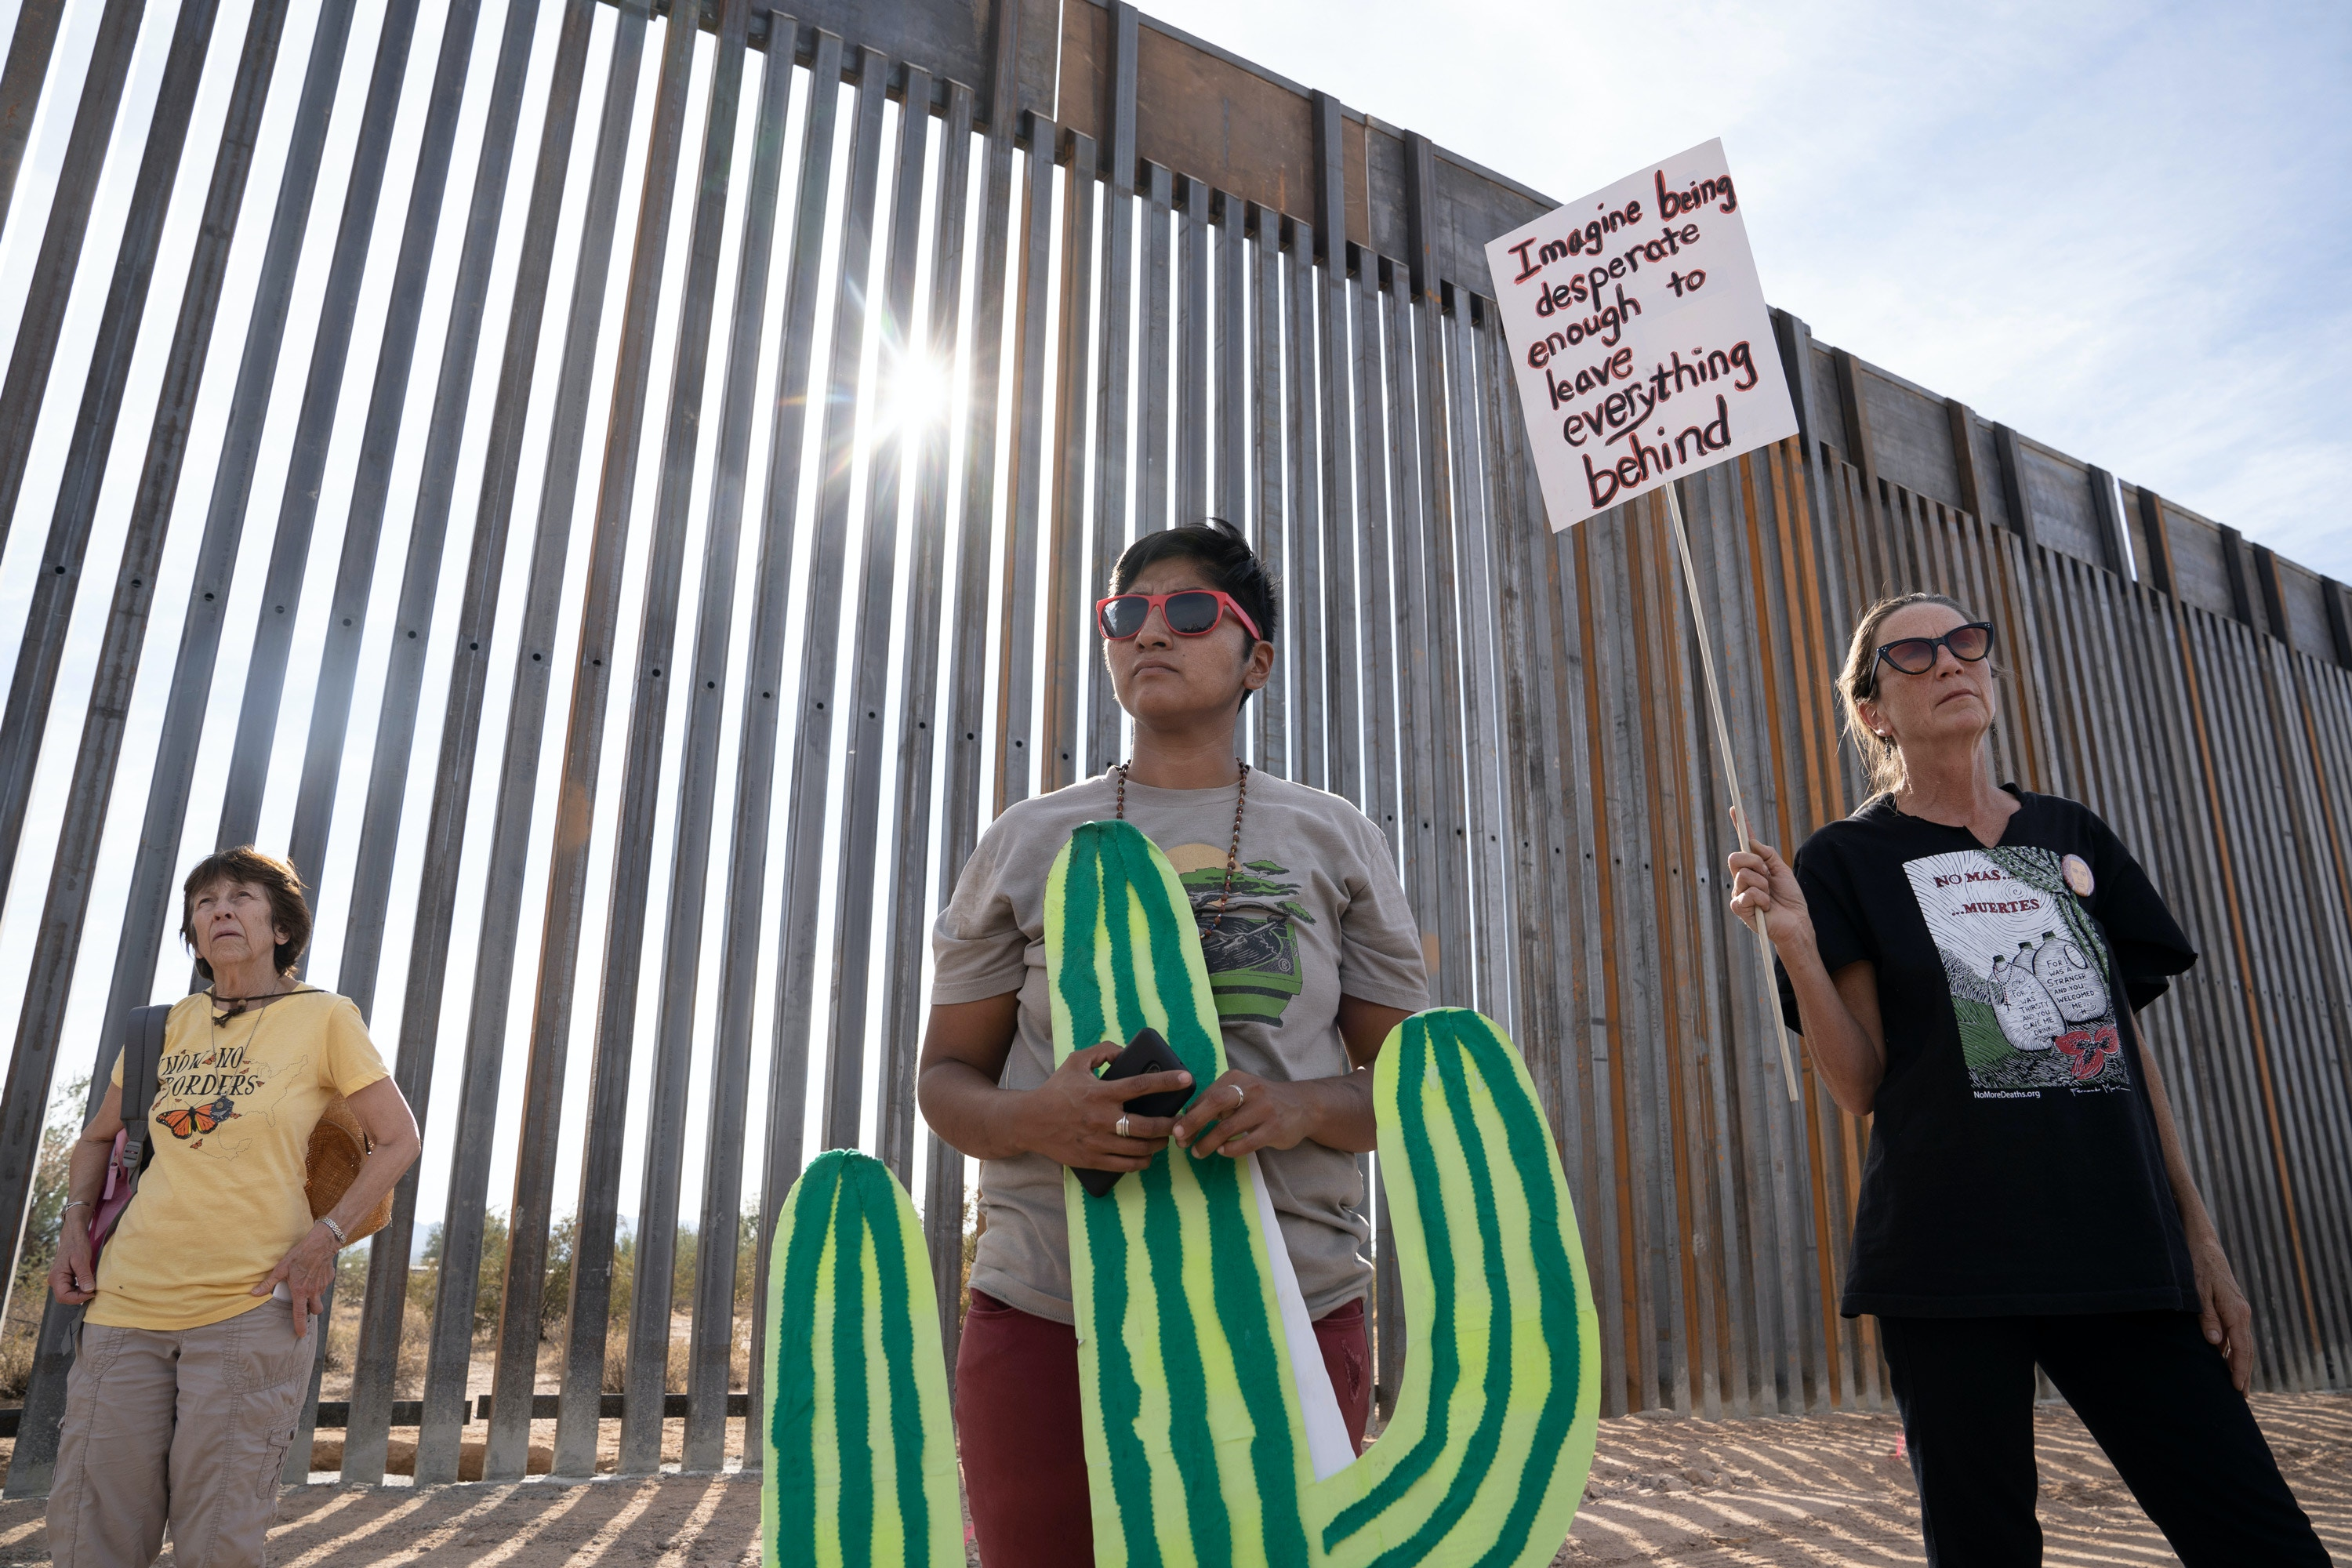 Amber Ortega, 33, (center), a Hia-Ced O'odham and Tohono O'odham activist, student and spoken word poet, and Mary Diamond (right) stand in front of the newly constructed U.S. - Mexico border wall in the Organ Pipe Cactus National Monument on November 9, 2019 during a day of actions protesting the building of the wall. The area is sacred to the Hia-Ced O'odham and the Tohono O'odham nations.Photo by Kitra Cahana/MAPS for The Intercept